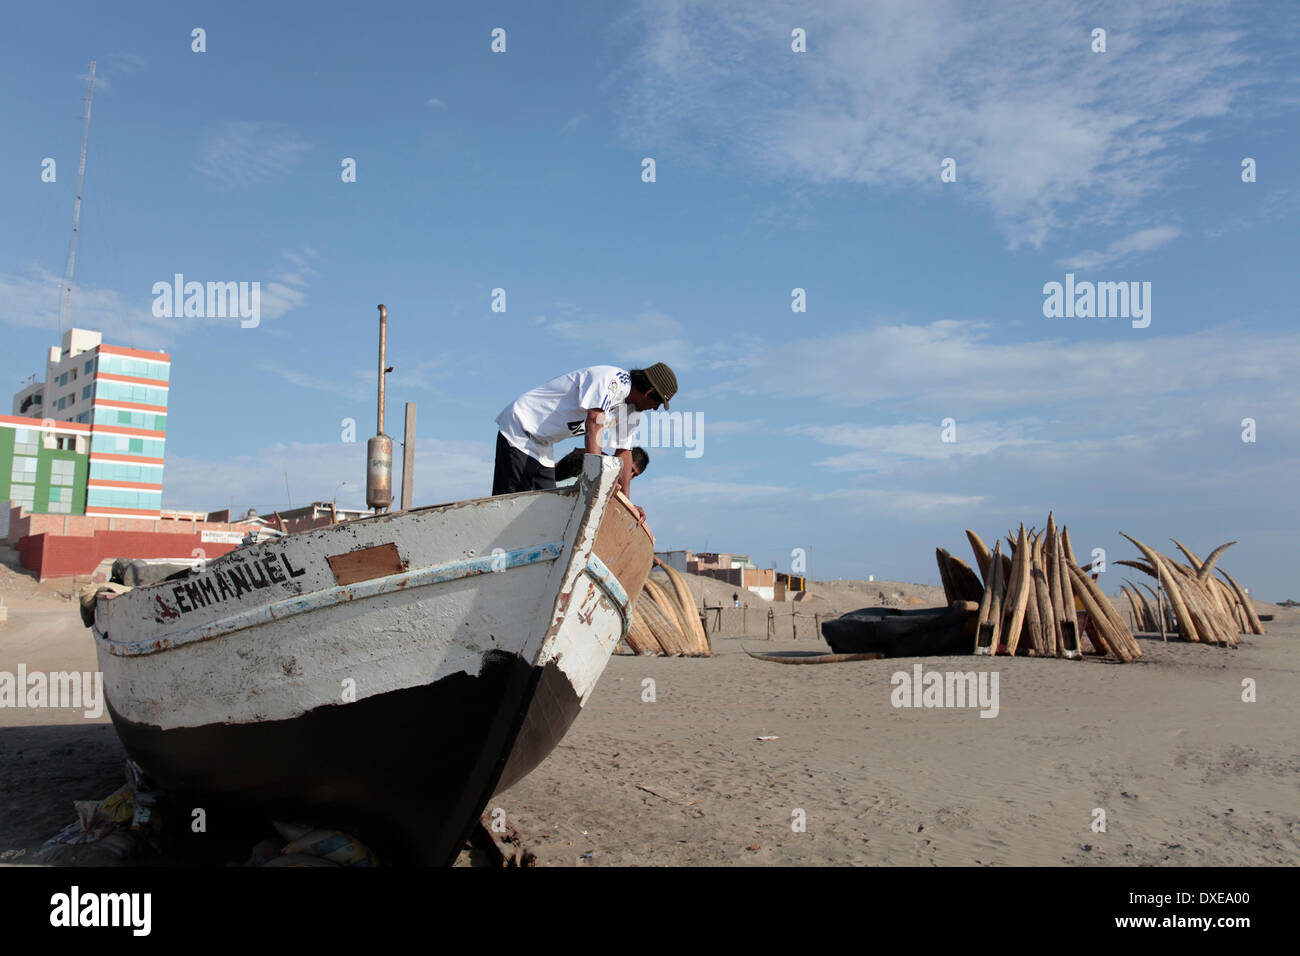 PIMENTEL, PERU- MARCH 22: Several men are repairing a small fishing boat on the beach of Pimentel, some 800 km to the N of Lima, in Pimentel, Peru, Saturday, March 22, 2014. Photo by Elkin Cabarcas - Stock Image